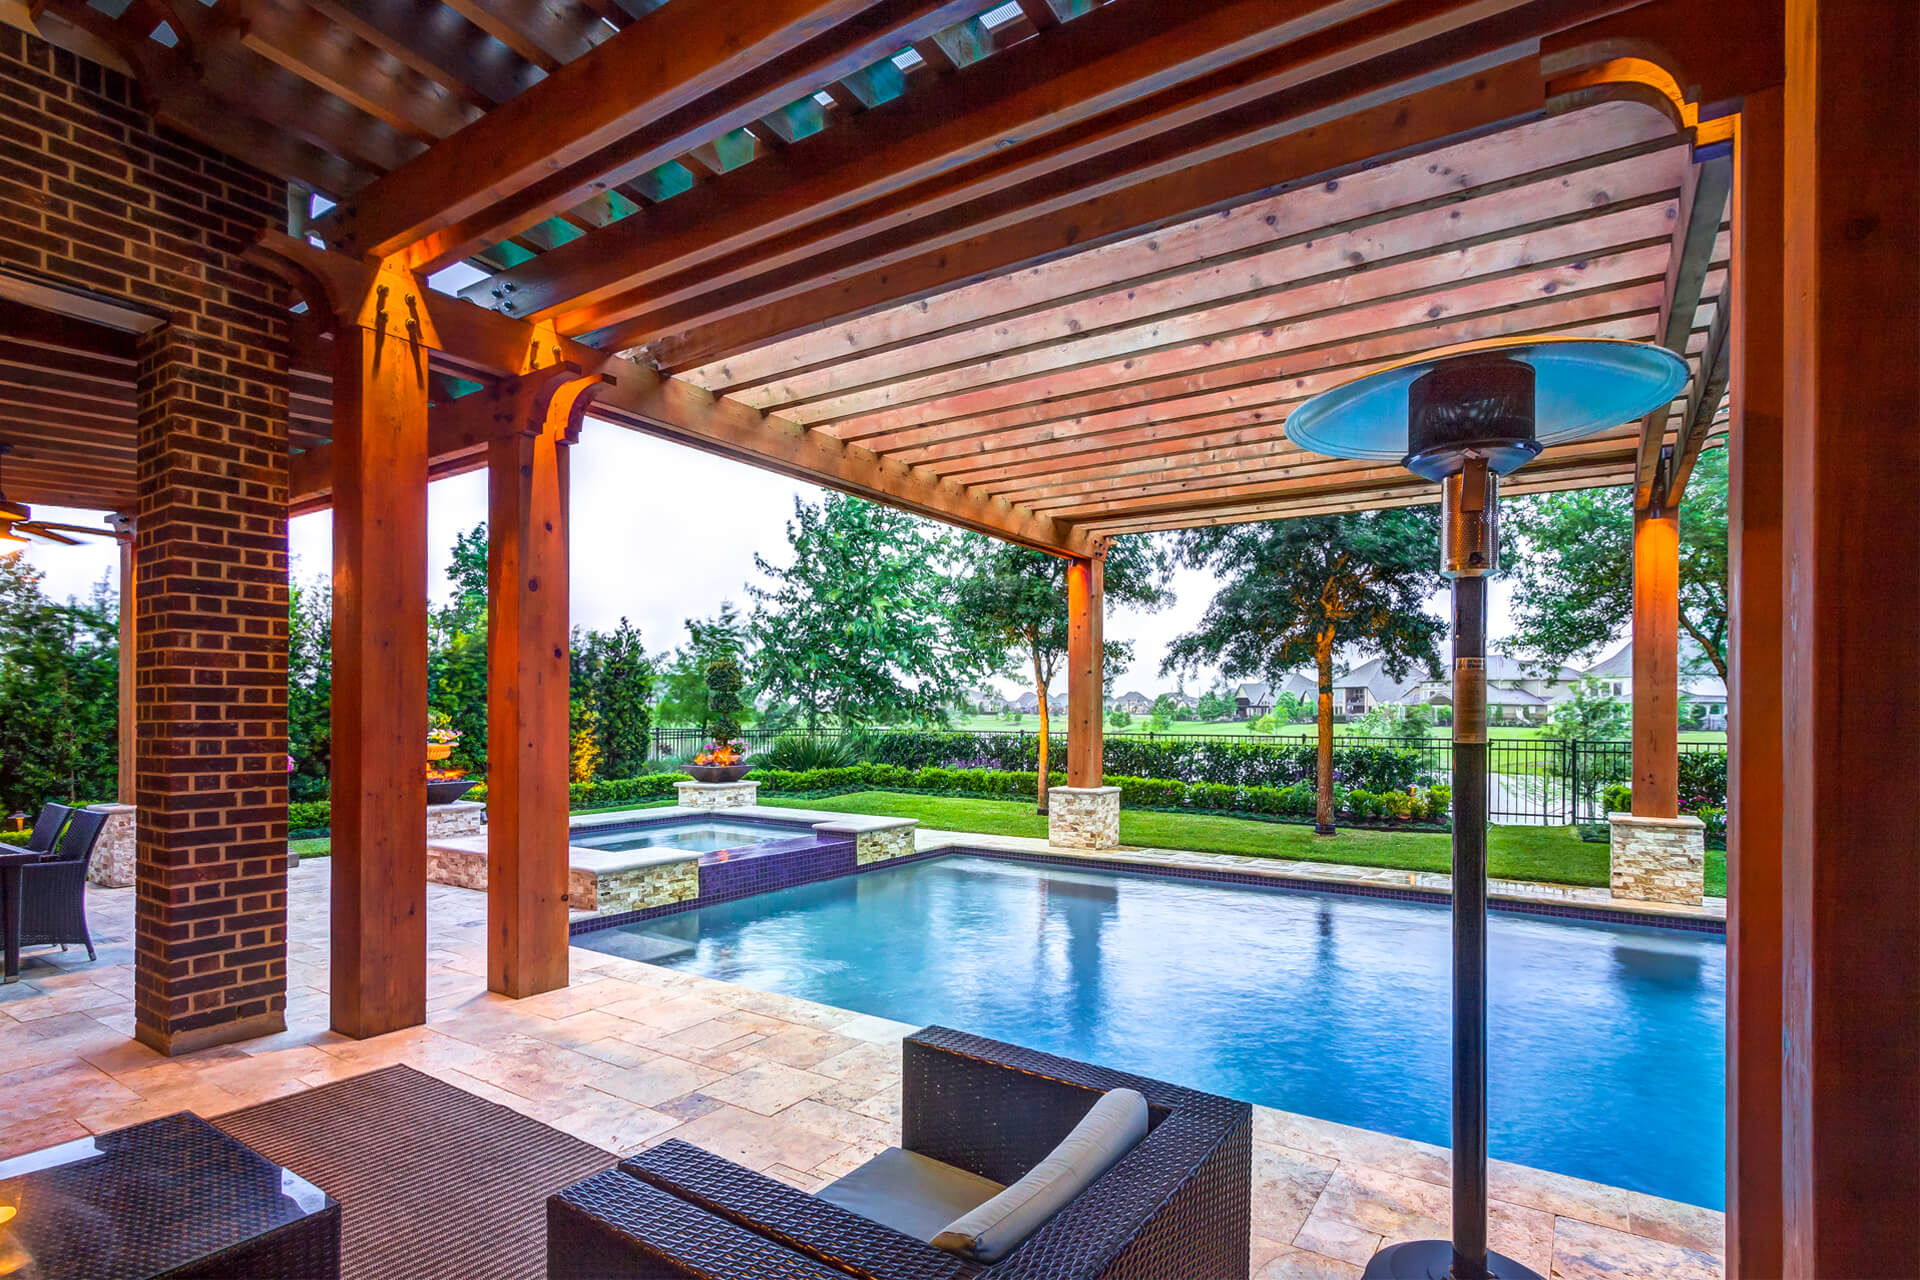 Custom Pergola over Pool with Outdoor Living Space - by Creekstone Outdoor Living